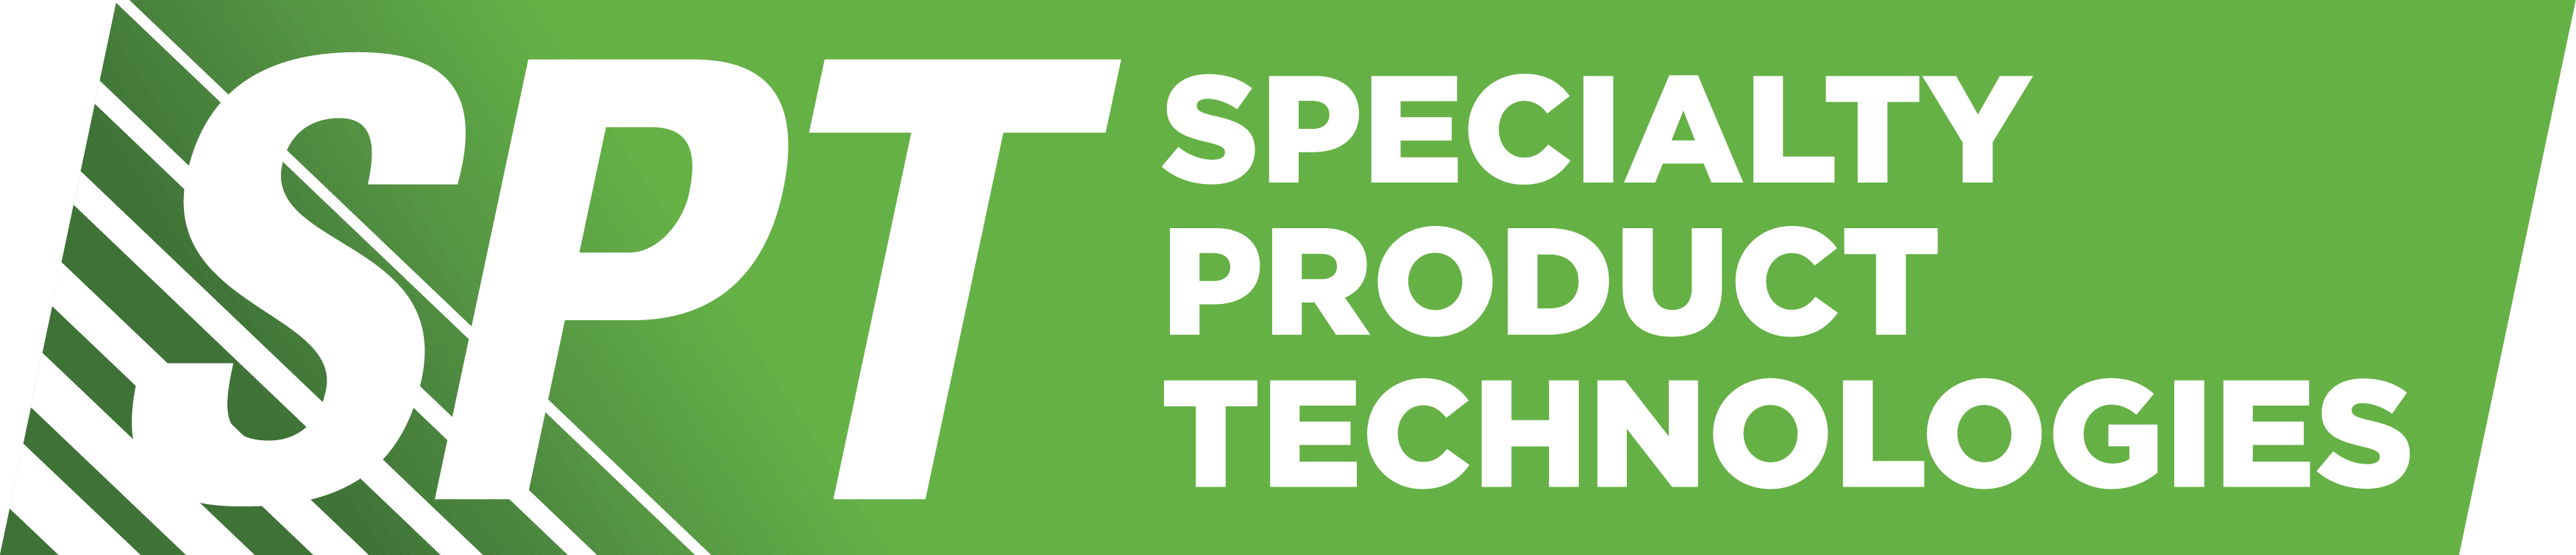 Specialty Product Technologies Logo